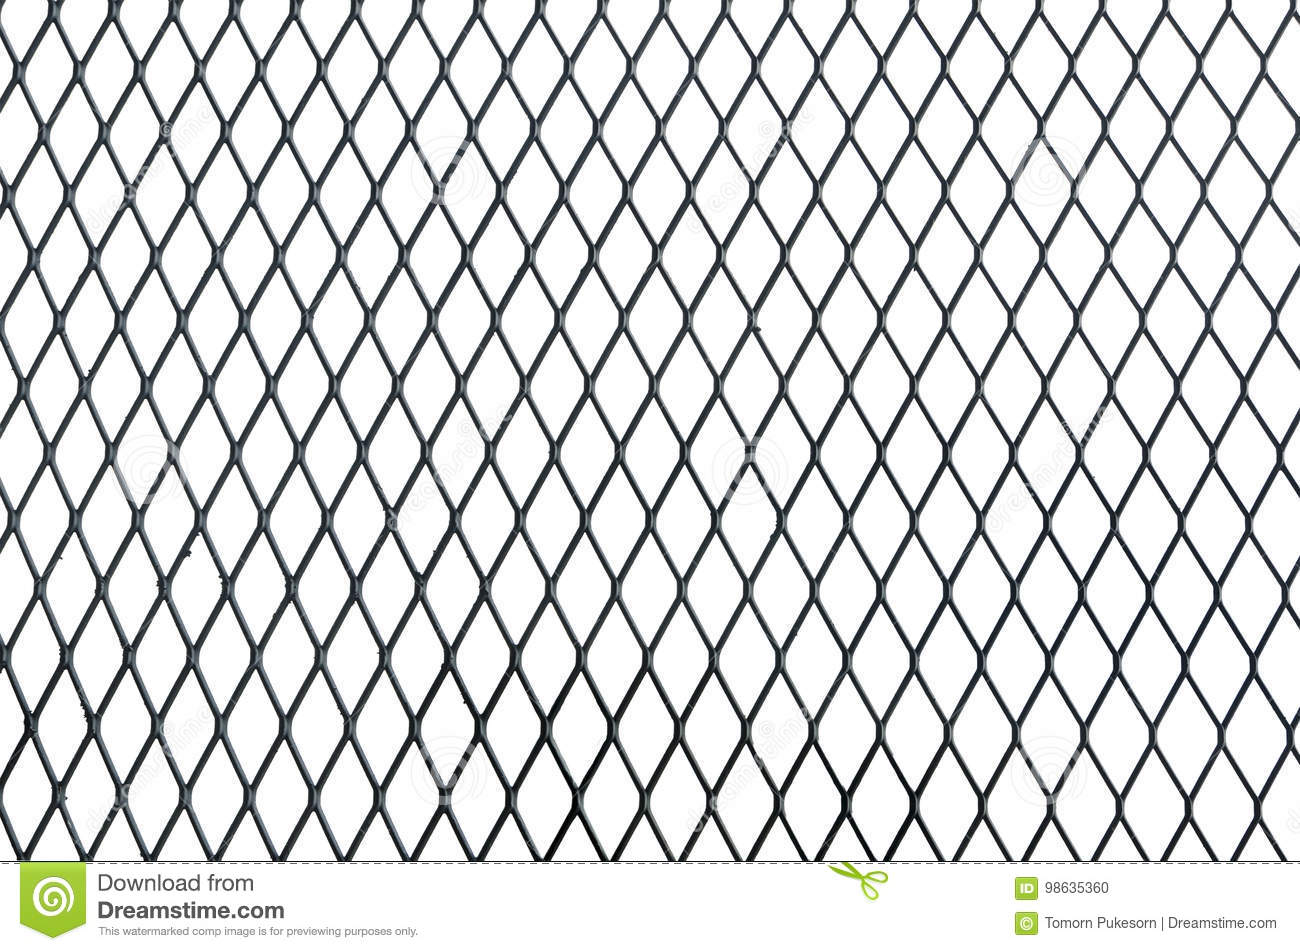 Wire Net Texture Isolated On White Background Stock Photo - Image of ...